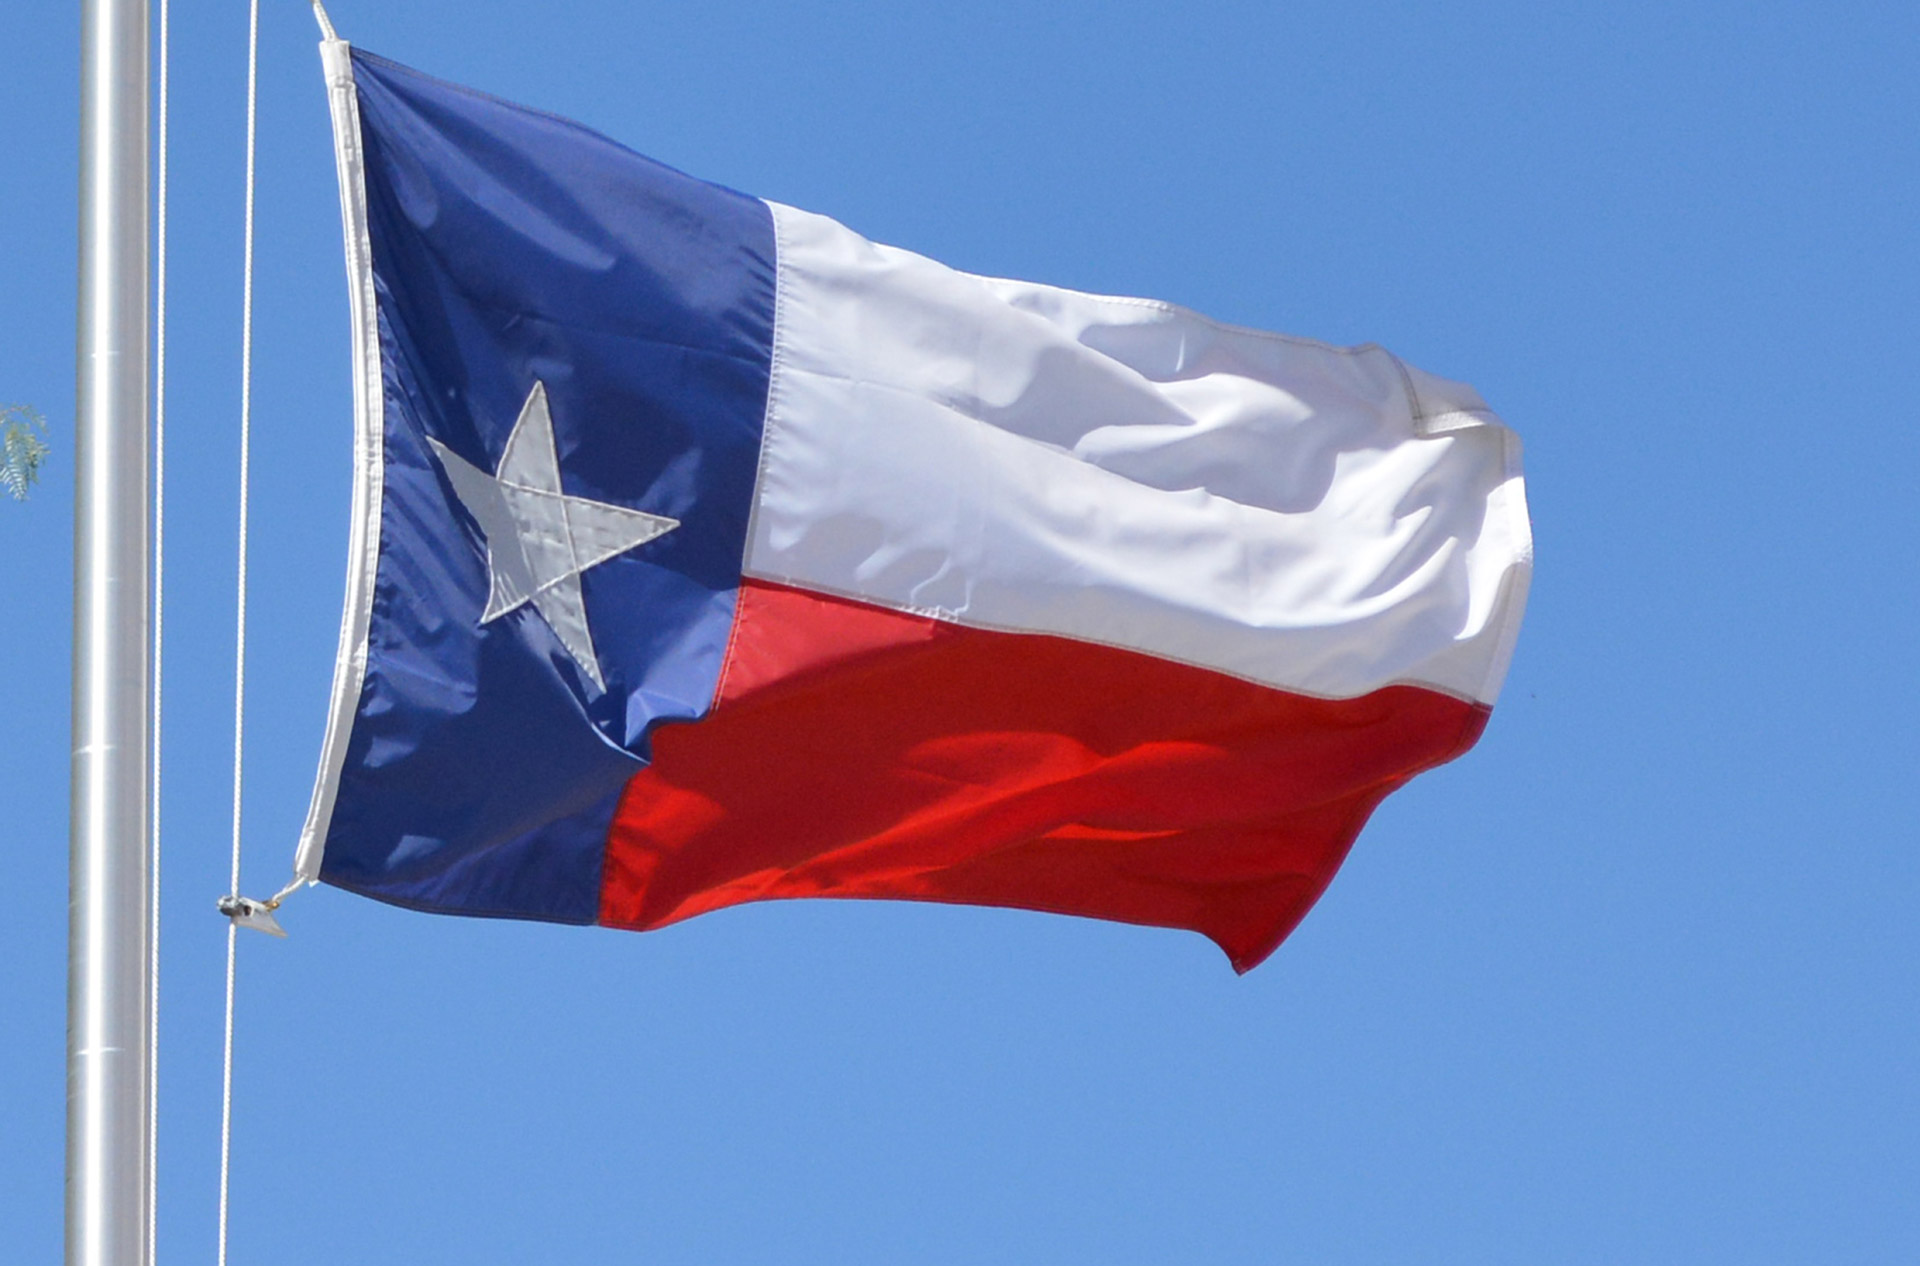 The Texas State Flag A Symbol Filled With Great Meaning